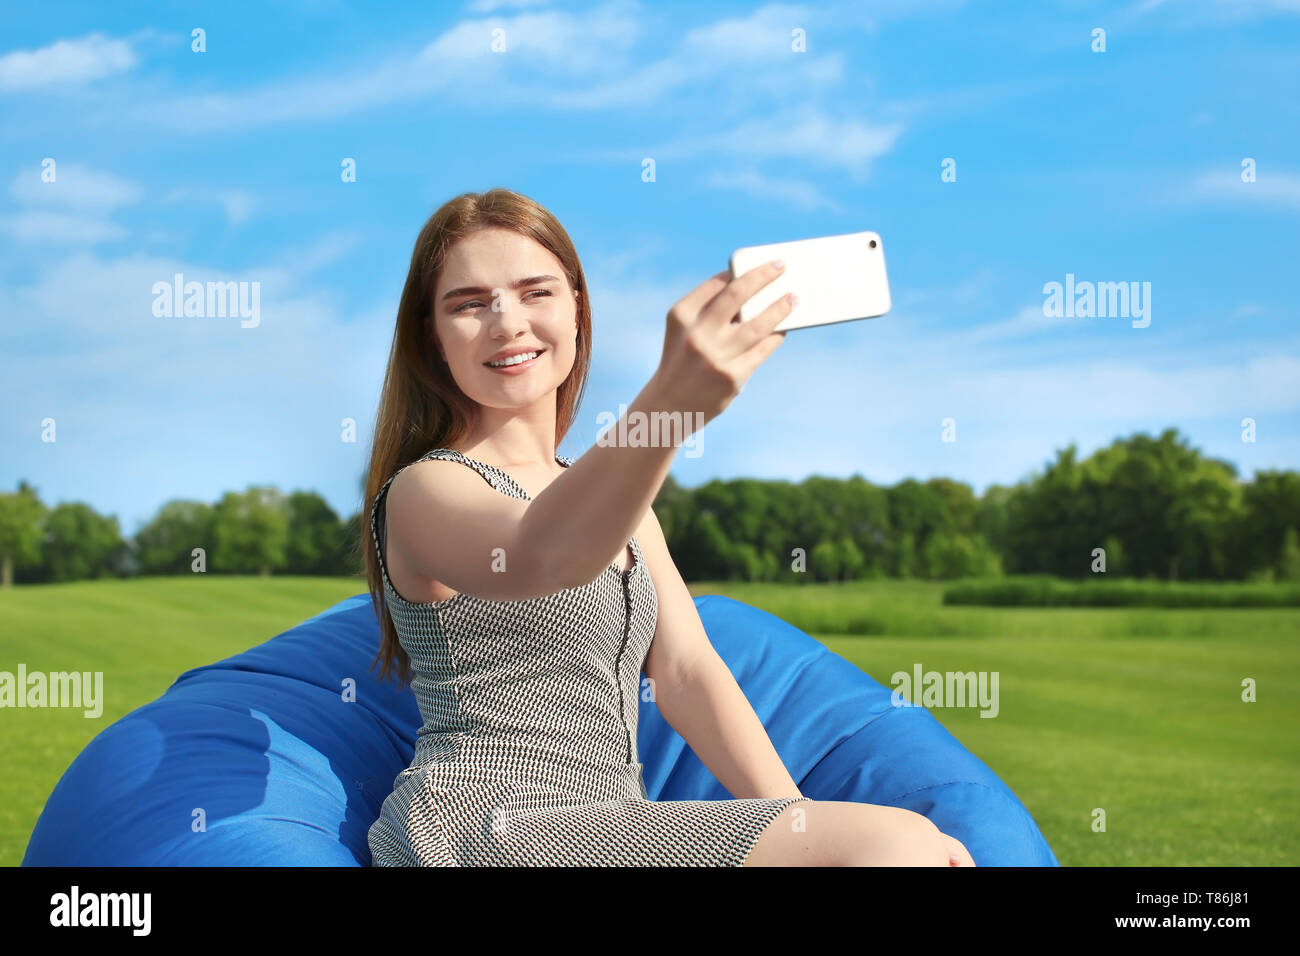 Young woman taking selfie while sitting on bean bag chair outdoors - Stock Image